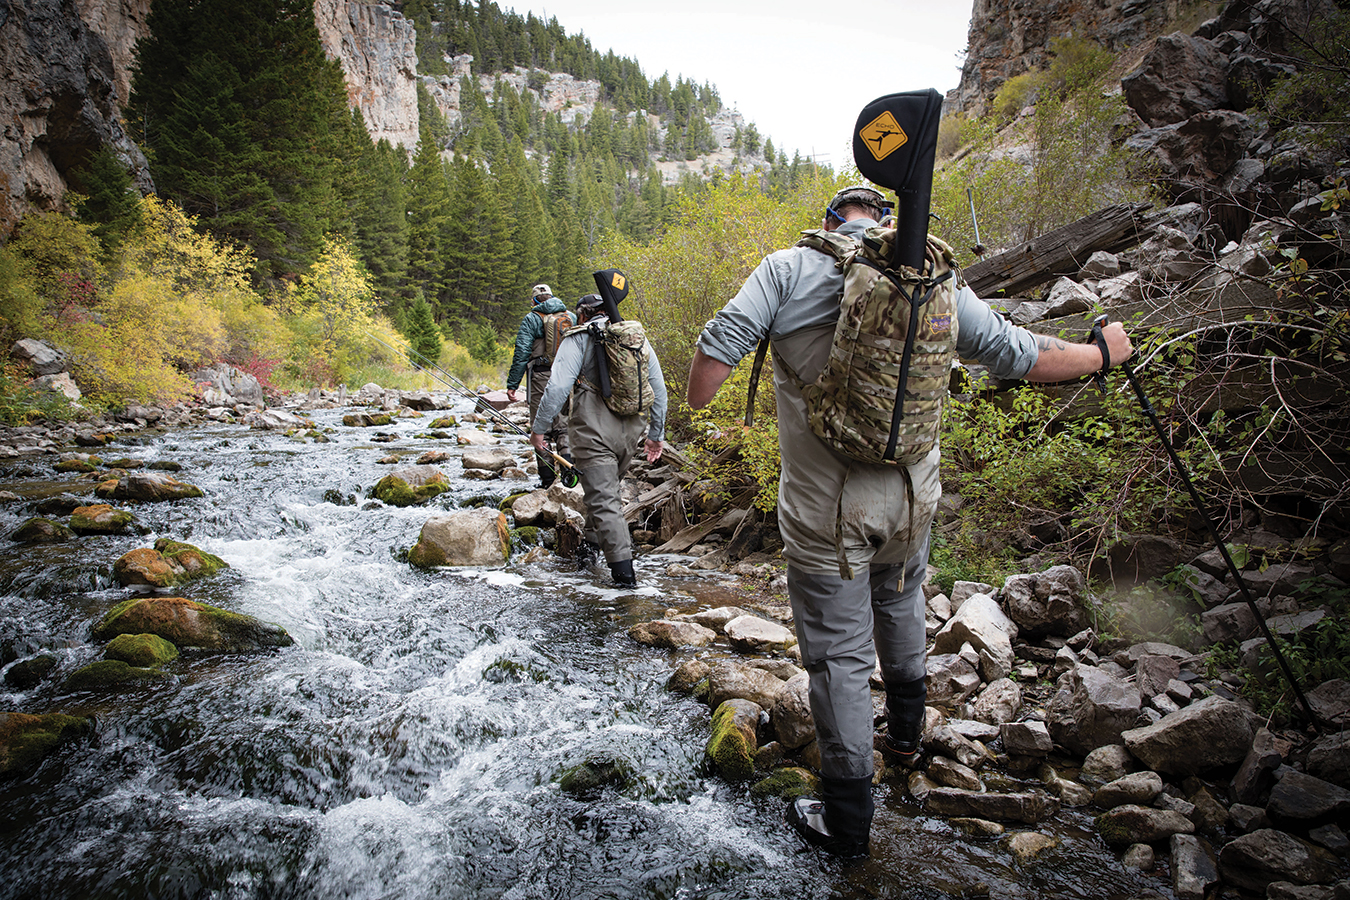 "TRAUMATICALLY INJURED IN THE SAME BLAST IN AFGHANISTAN IN 2012, NICHOLAS WILLIAMS AND JOHN HOSEA FOLLOW GUIDE GRANT GRIGSBY UP MONTANA'S LEGENDARY SIXTEENMILE CREEK AS PART OF WARRIORS AND QUIET WATERS FOUNDATION'S ""FISHING EXPERIENCE."""